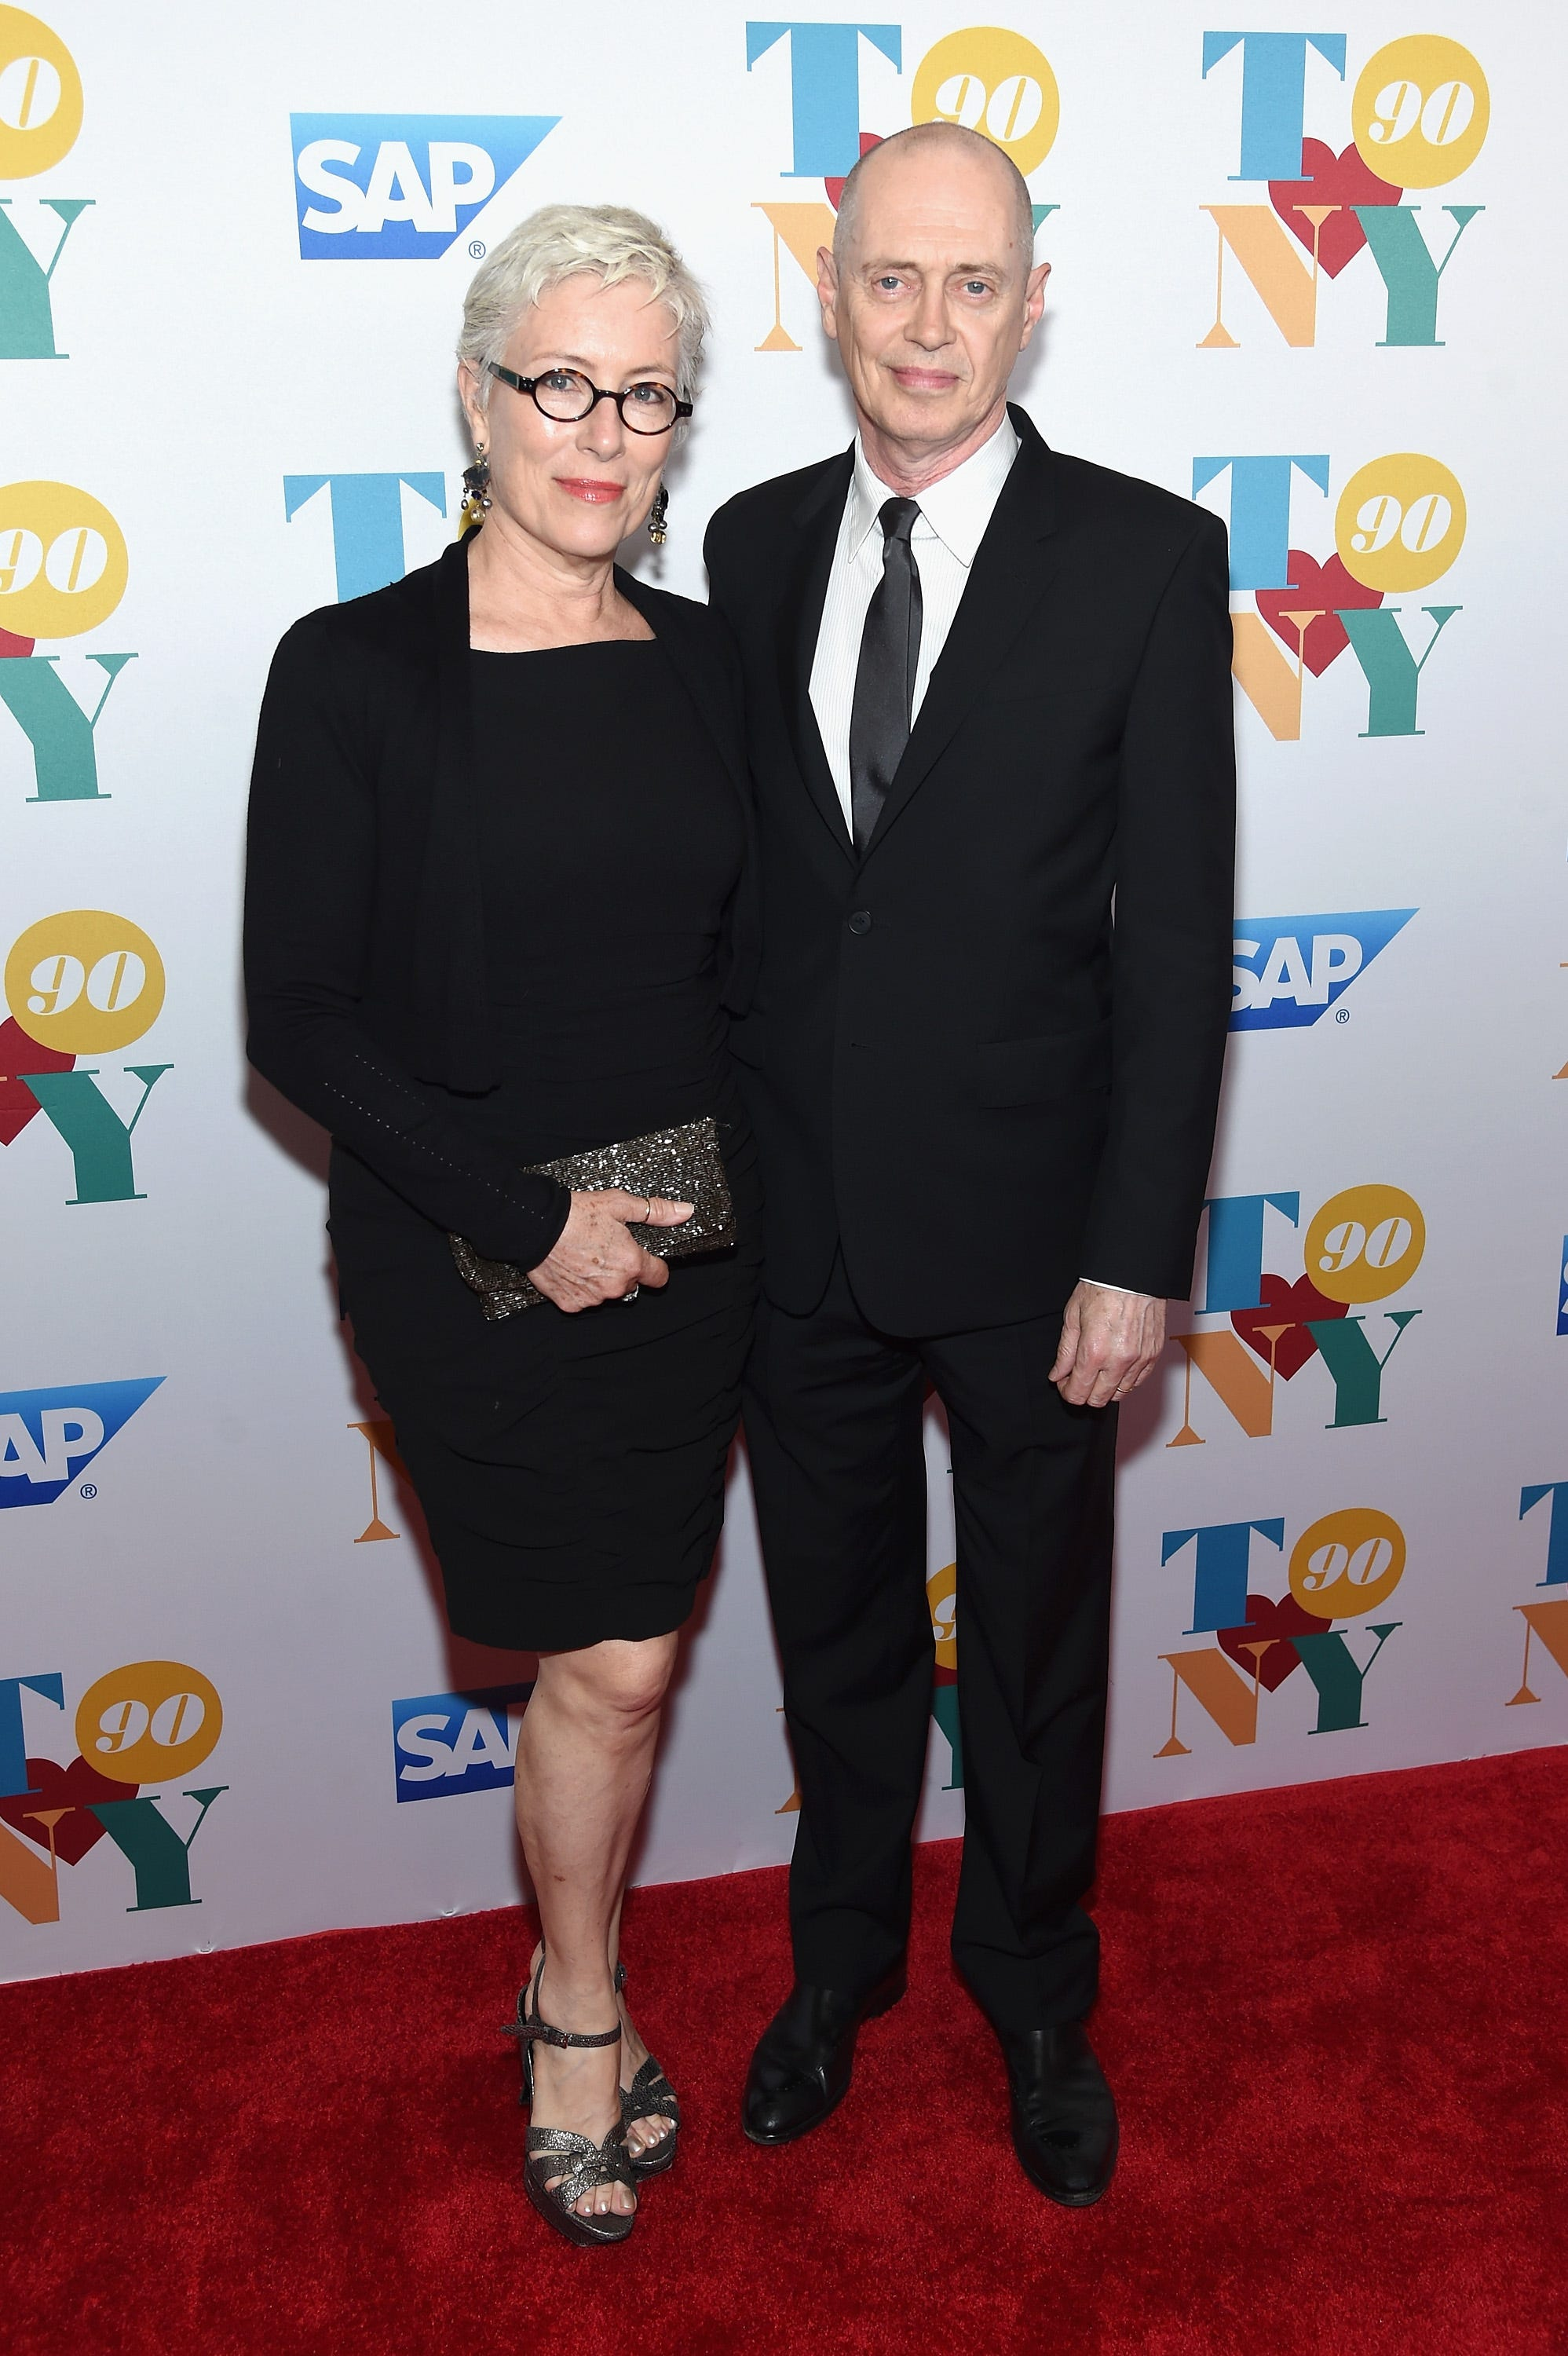 Steve Buscemi's wife, filmmaker and choreographer Jo Andres, dead at 65